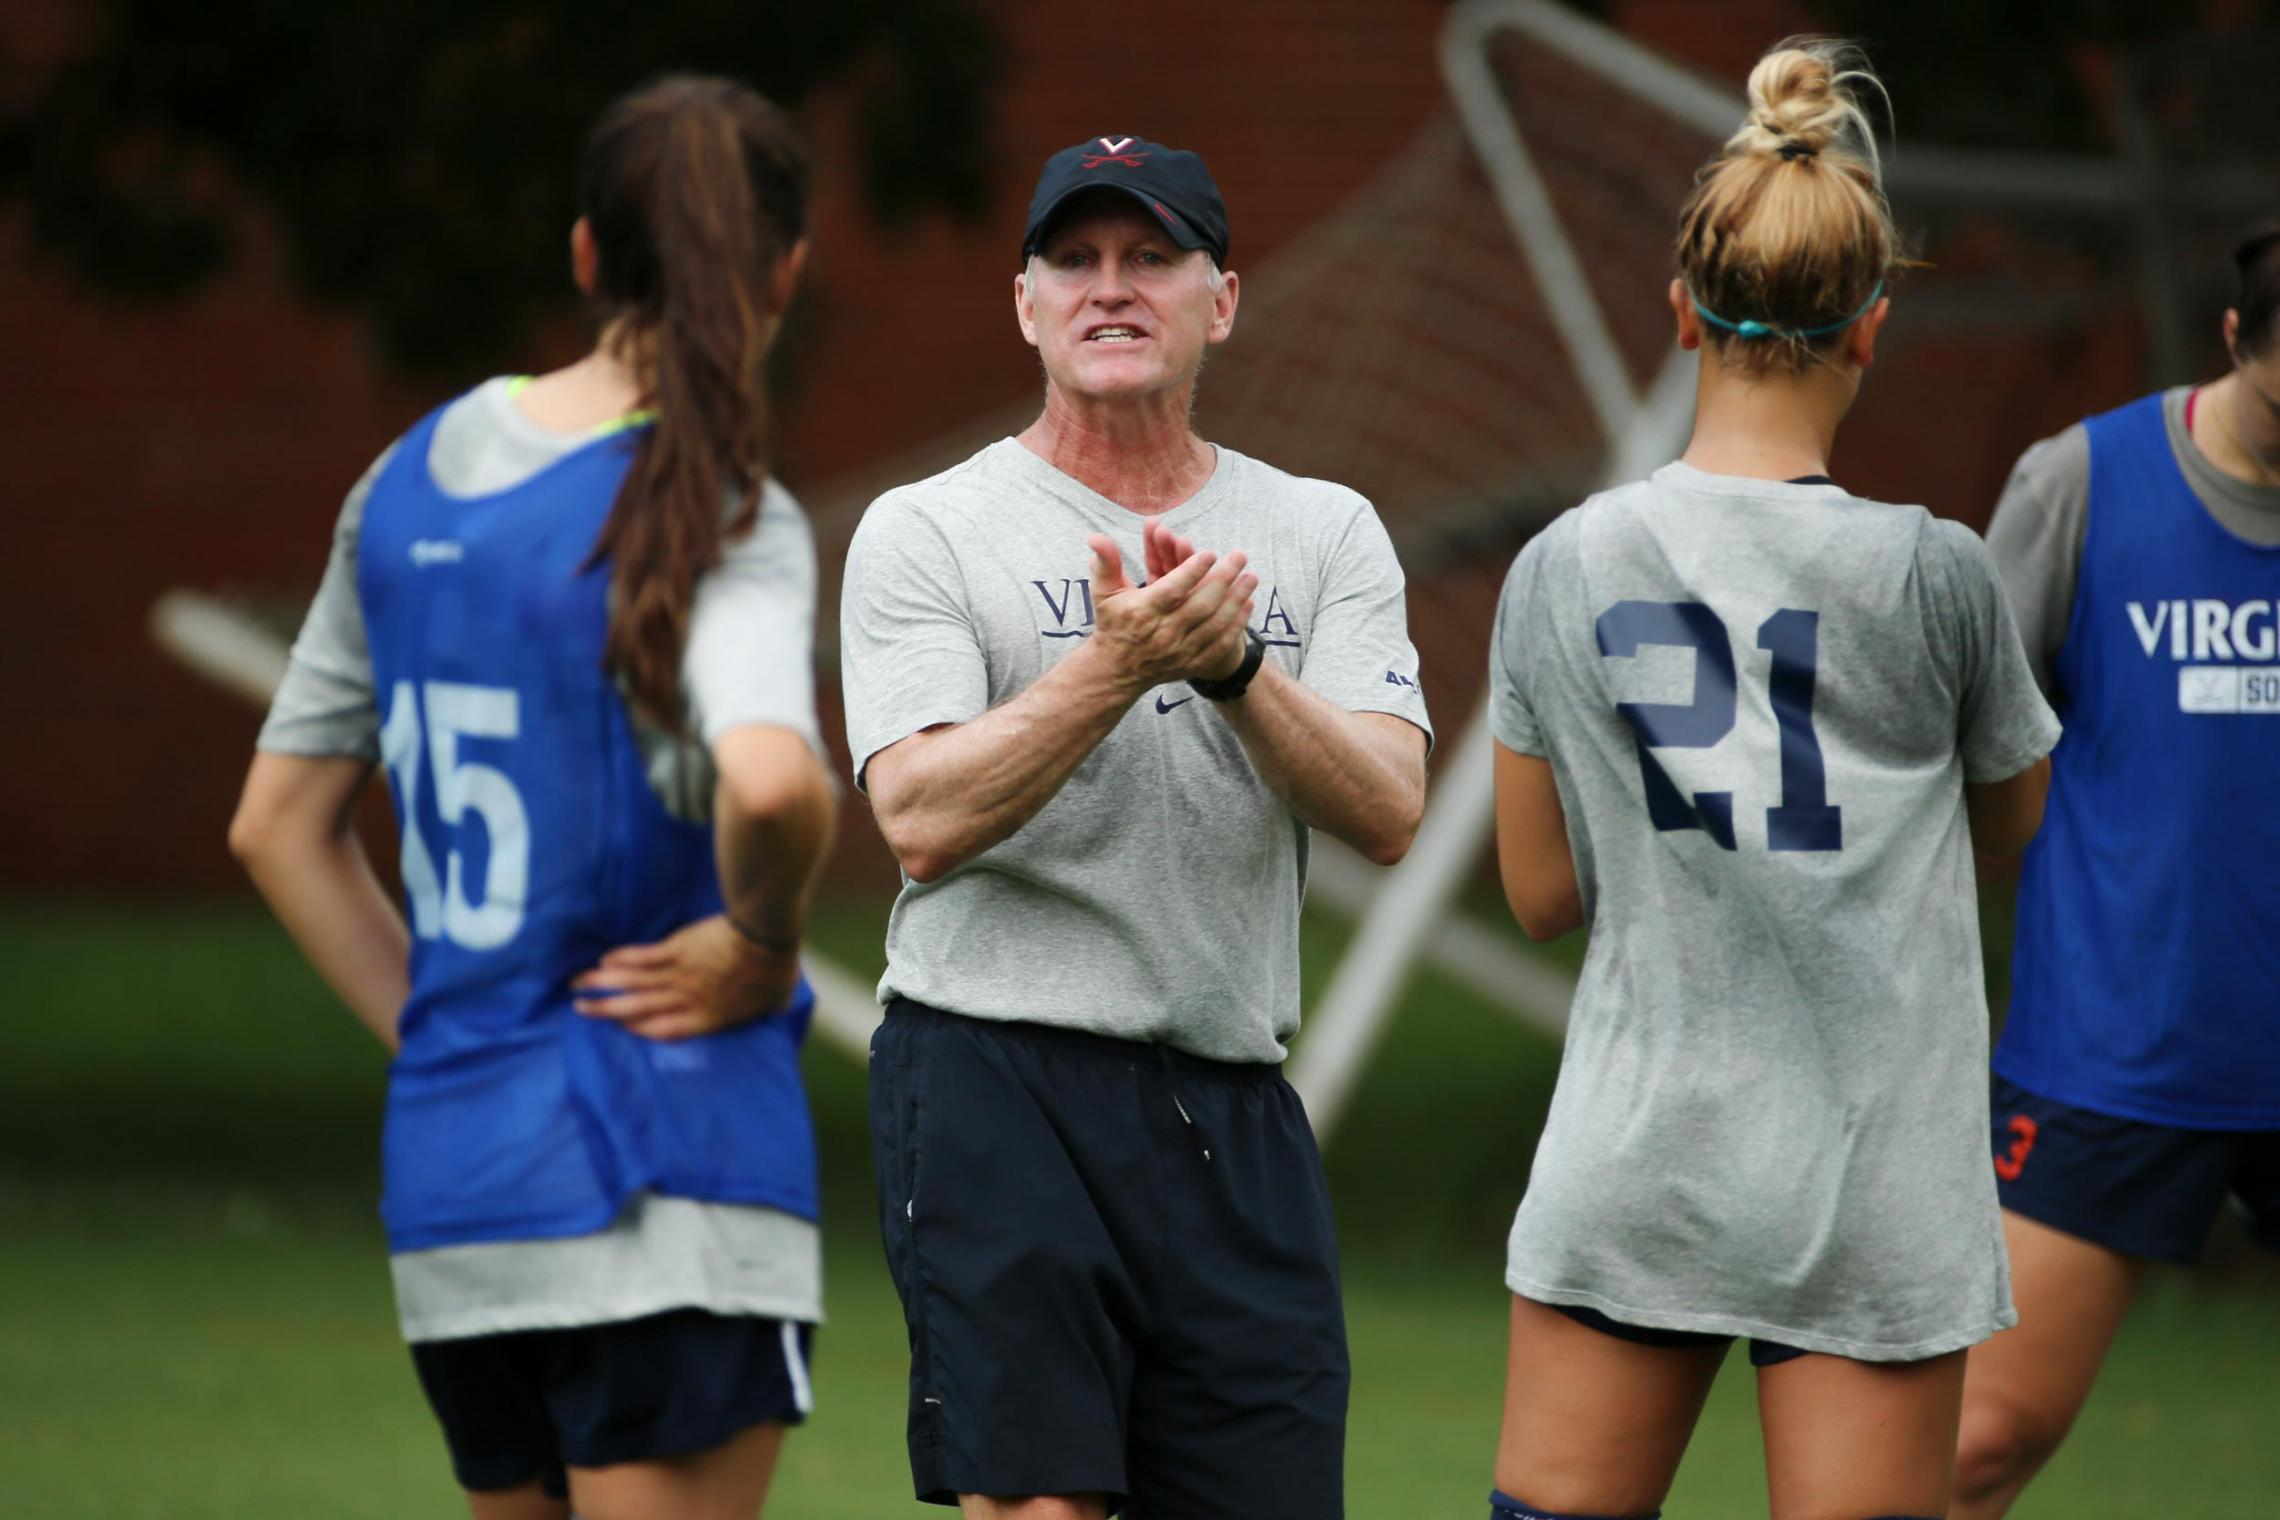 UVA women's soccer coach Steve Swanson is looking forward to another World Cup experience as an assistant for the U.S. team.